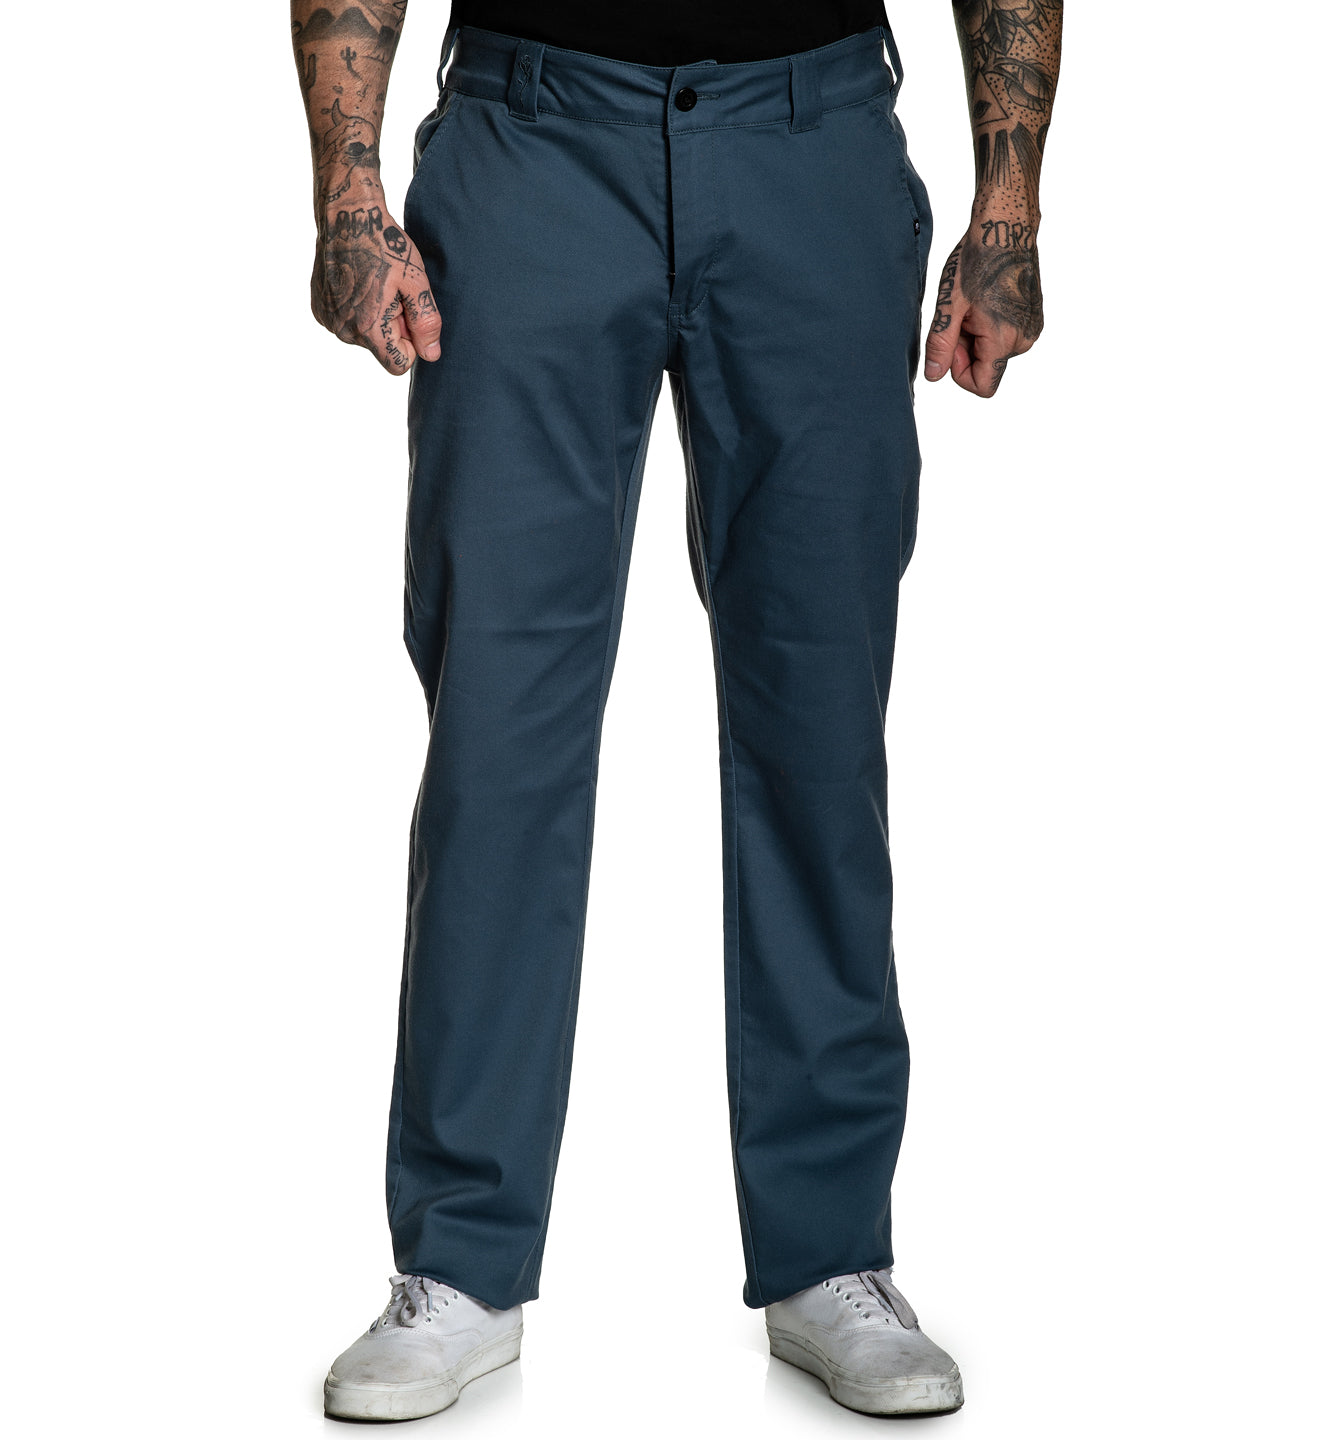 925 Chino Stretch Pant Orion Blue